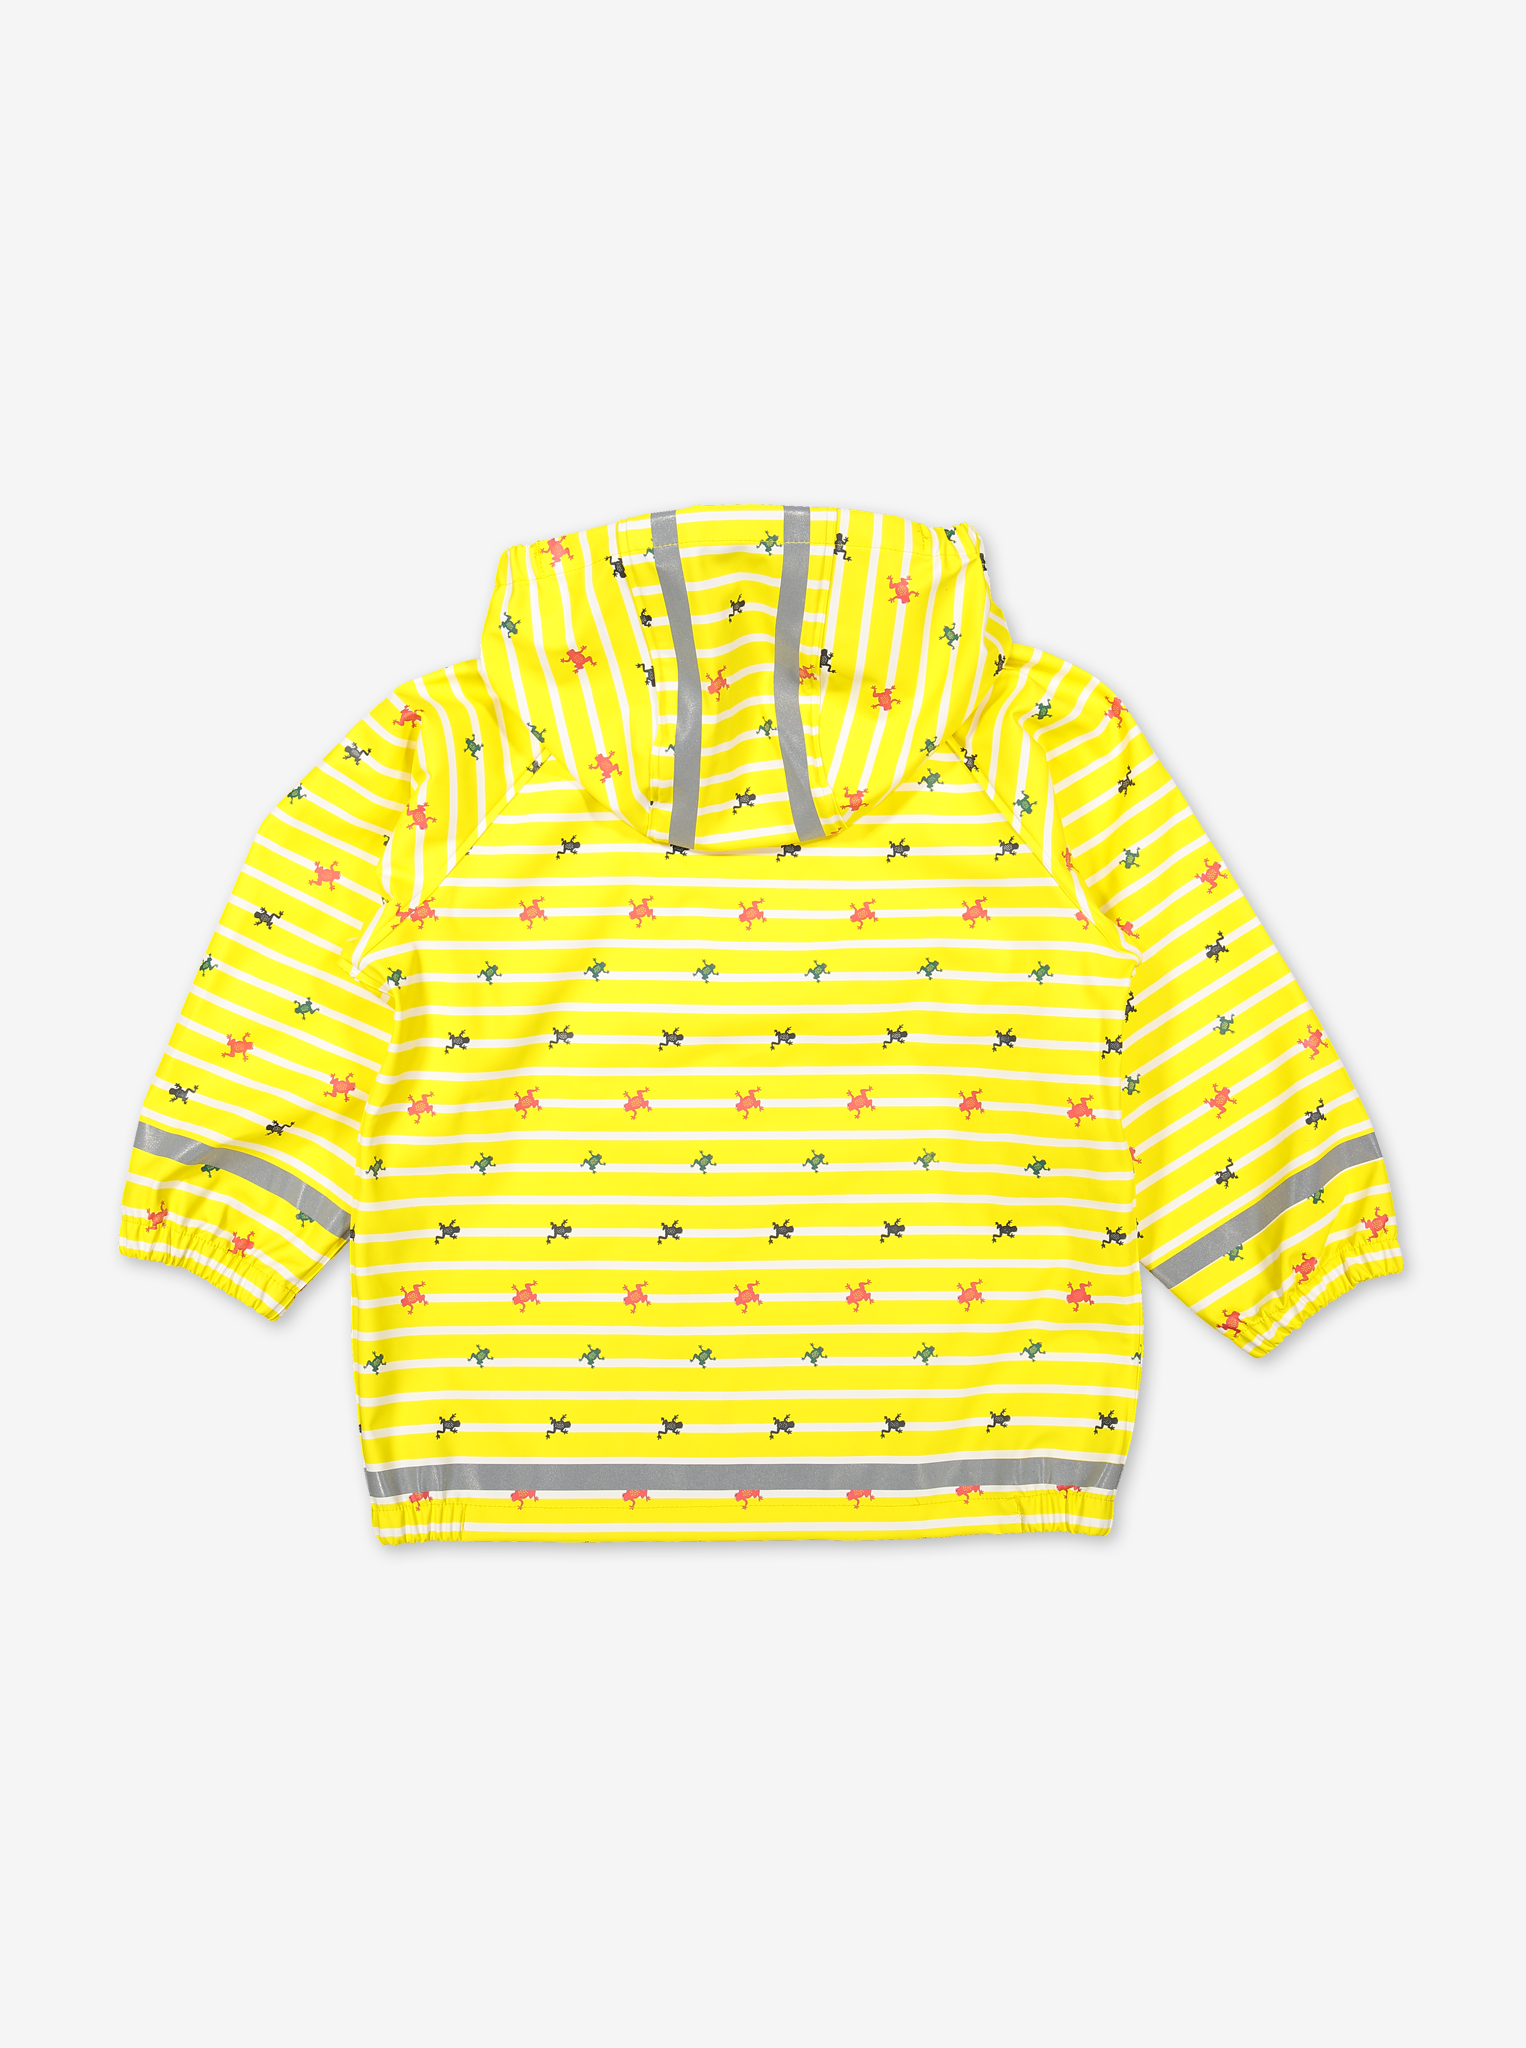 Back view of yellow raincoat for kids, made of polyester, with frog & stripes design, comes with a detachable hood.